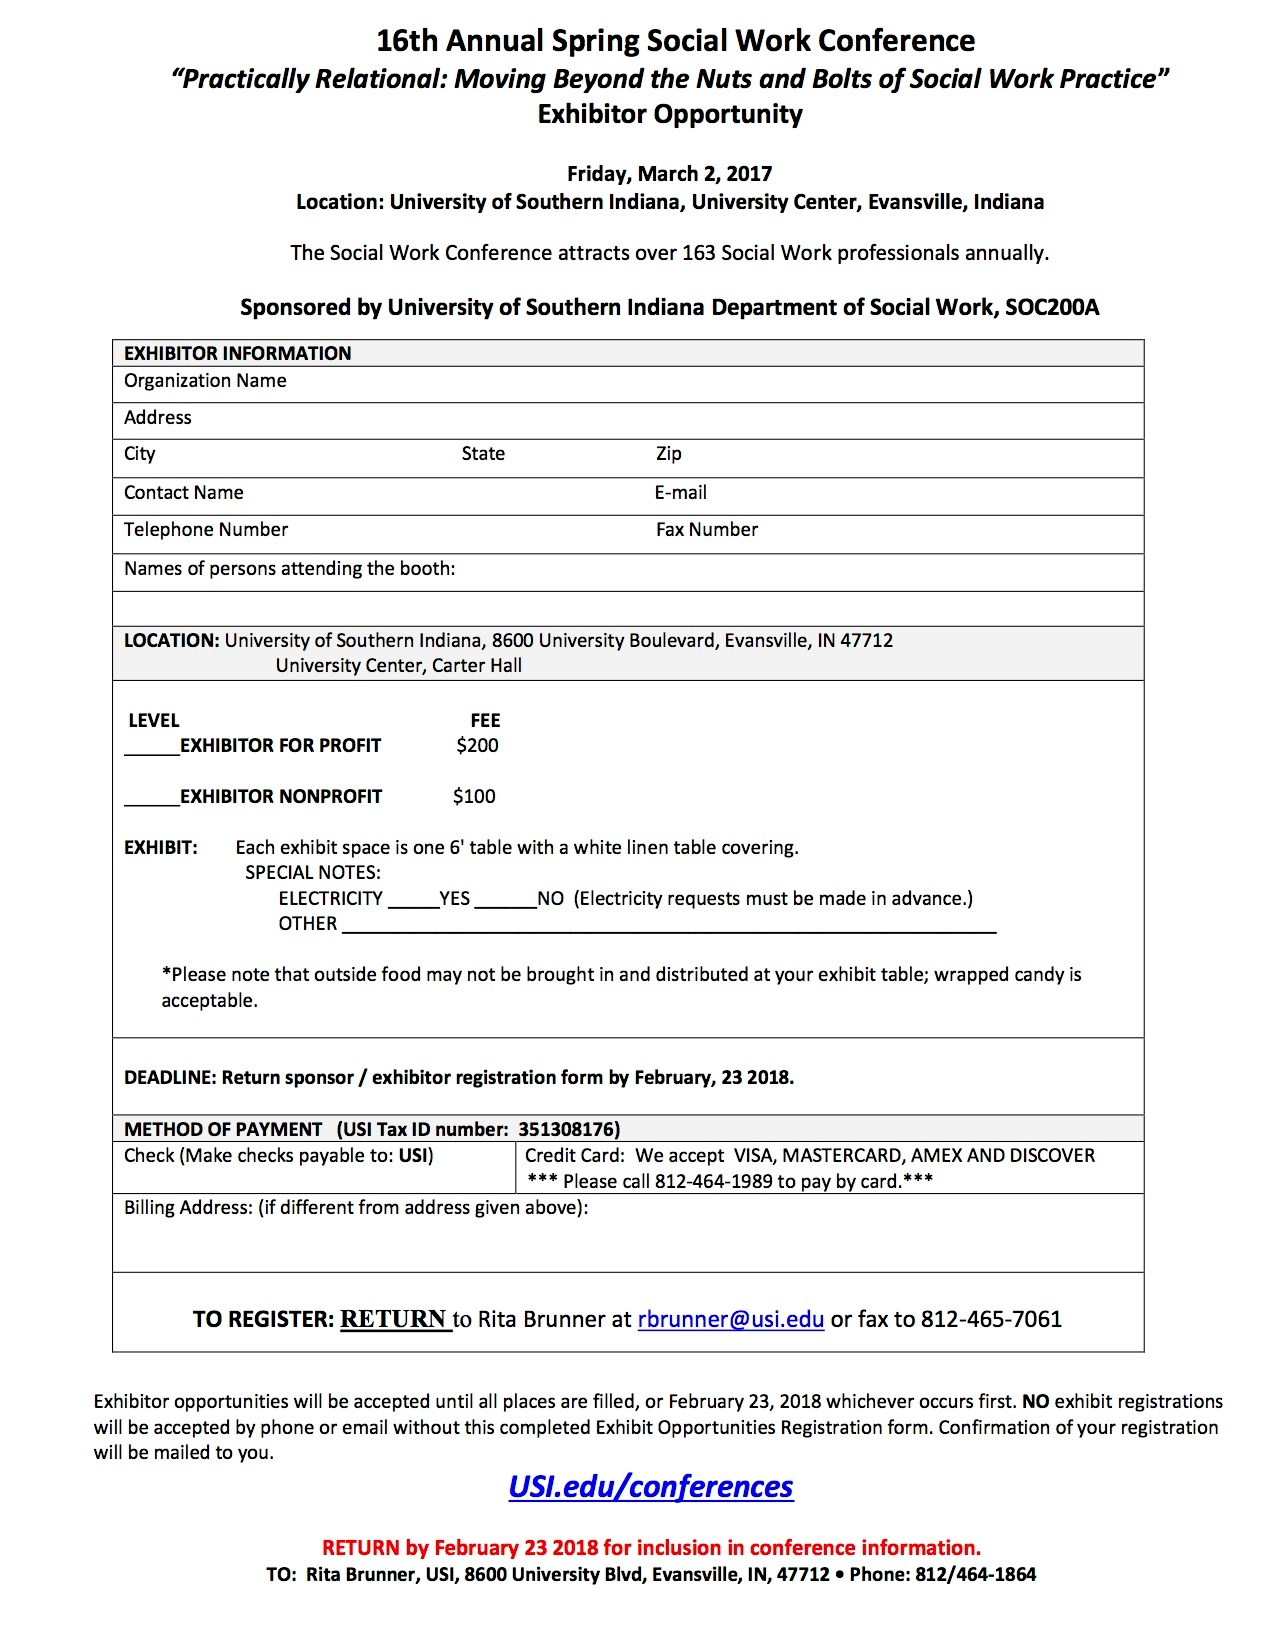 Social Work Conference Exhibitor form